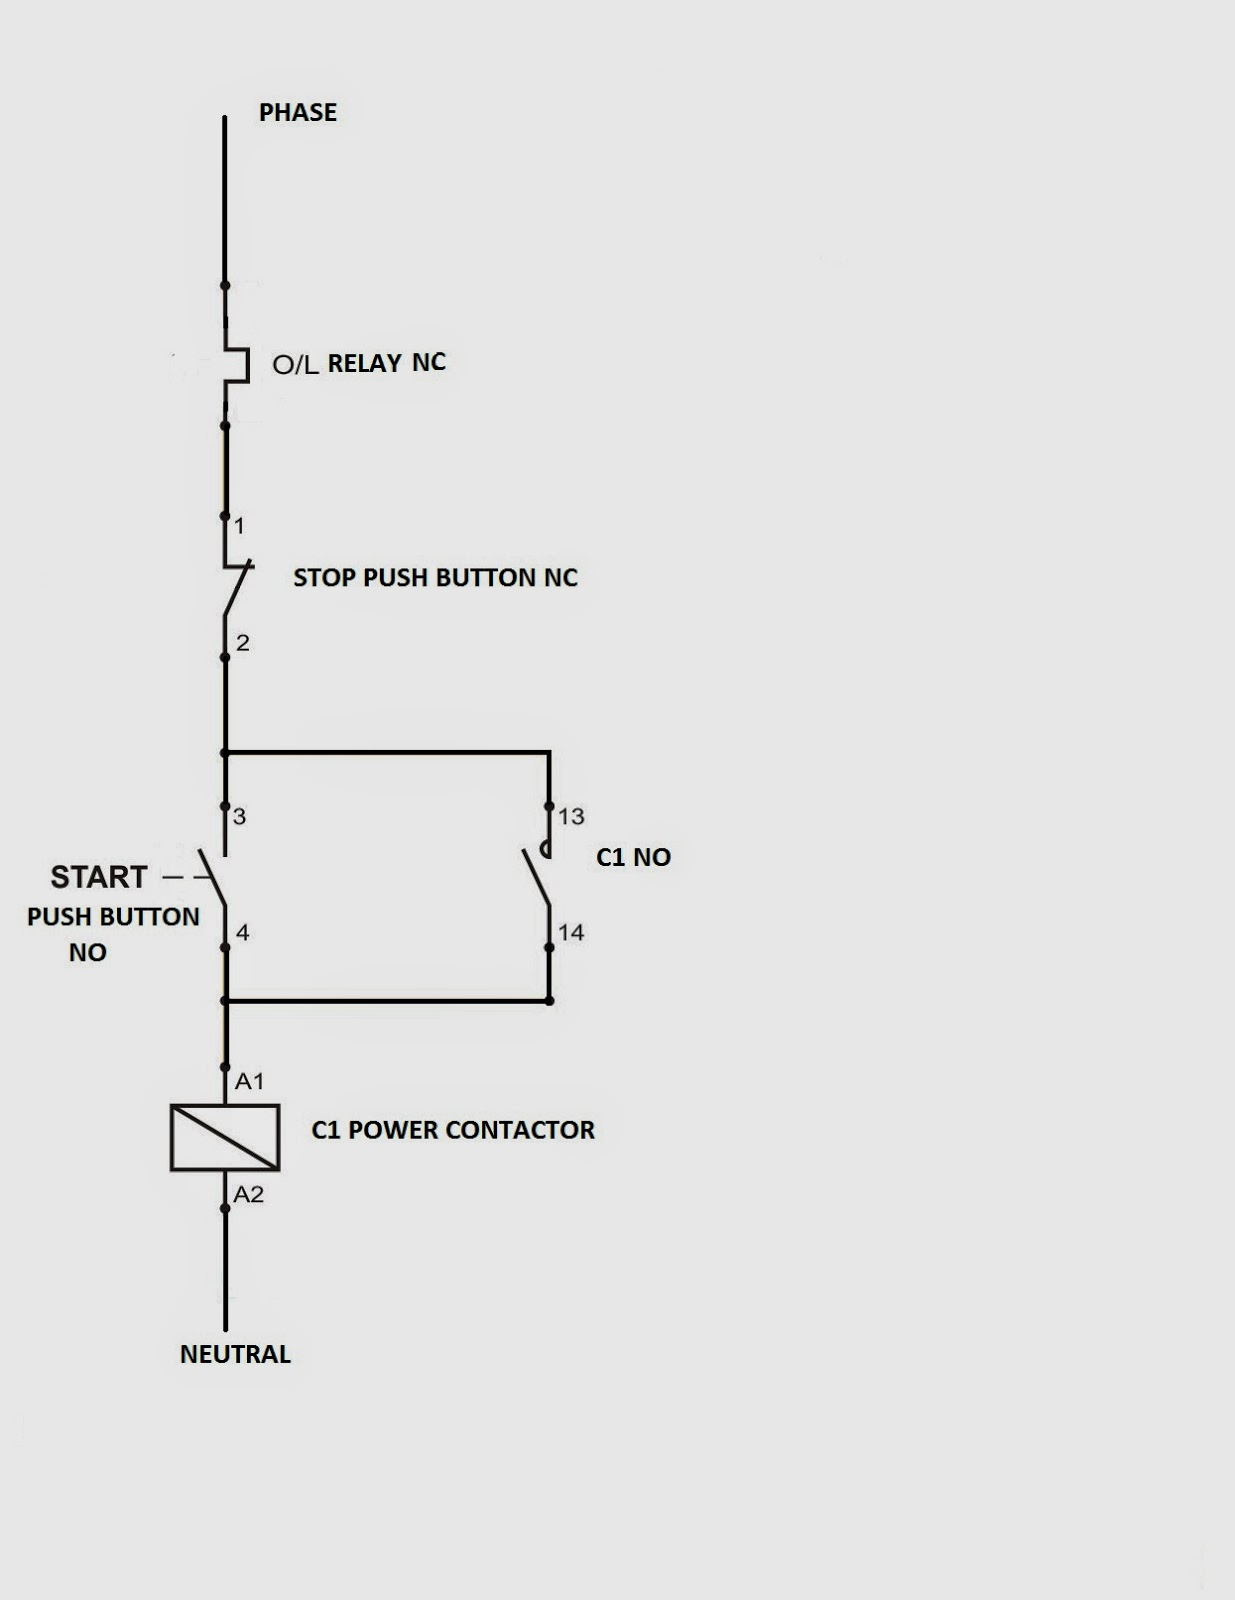 230 single phase wiring diagram html with Direct Online Dol Starter on 527534 Doerr Lr22132 Motor Wiring as well 110 Volt Motor Wiring Diagram in addition Direct Online Dol Starter in addition How To Wire Schneider LC1D Contactor further 8c65o Marathon Electric Motor 1 3 Hp I M Trying Understand.